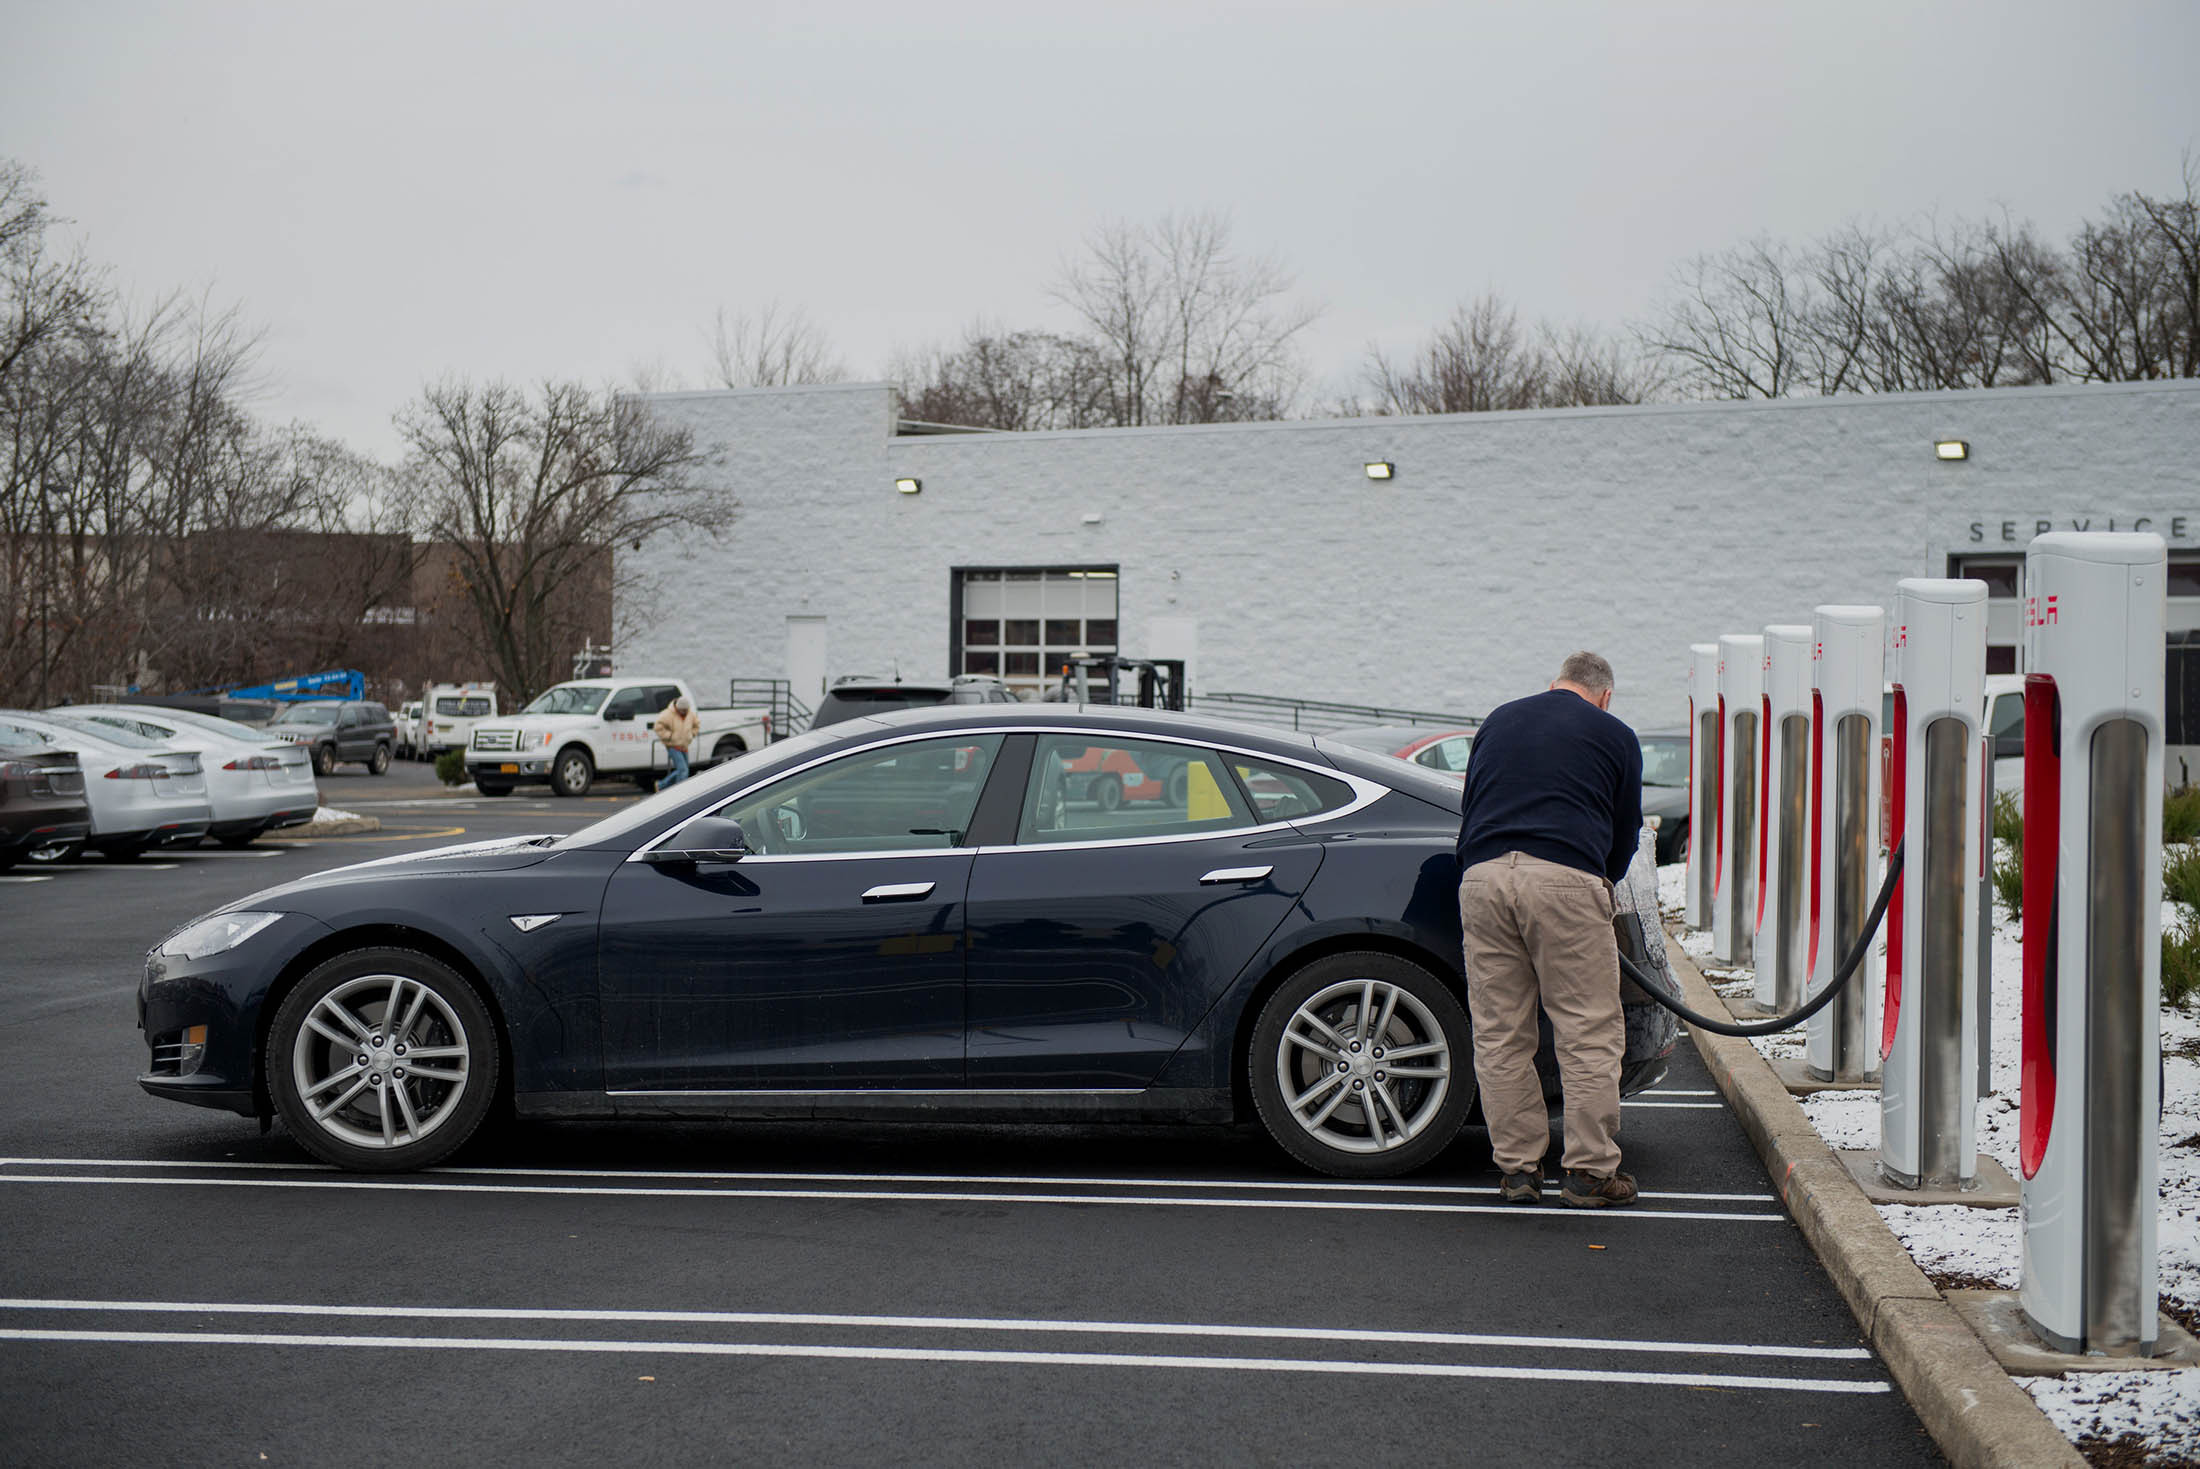 Tesla Ceo Elon Musk Says Use Of Its Supercharger Stations Will Still Be Very And Far Er Than Gasoline To Drive Long Distance With The Model 3